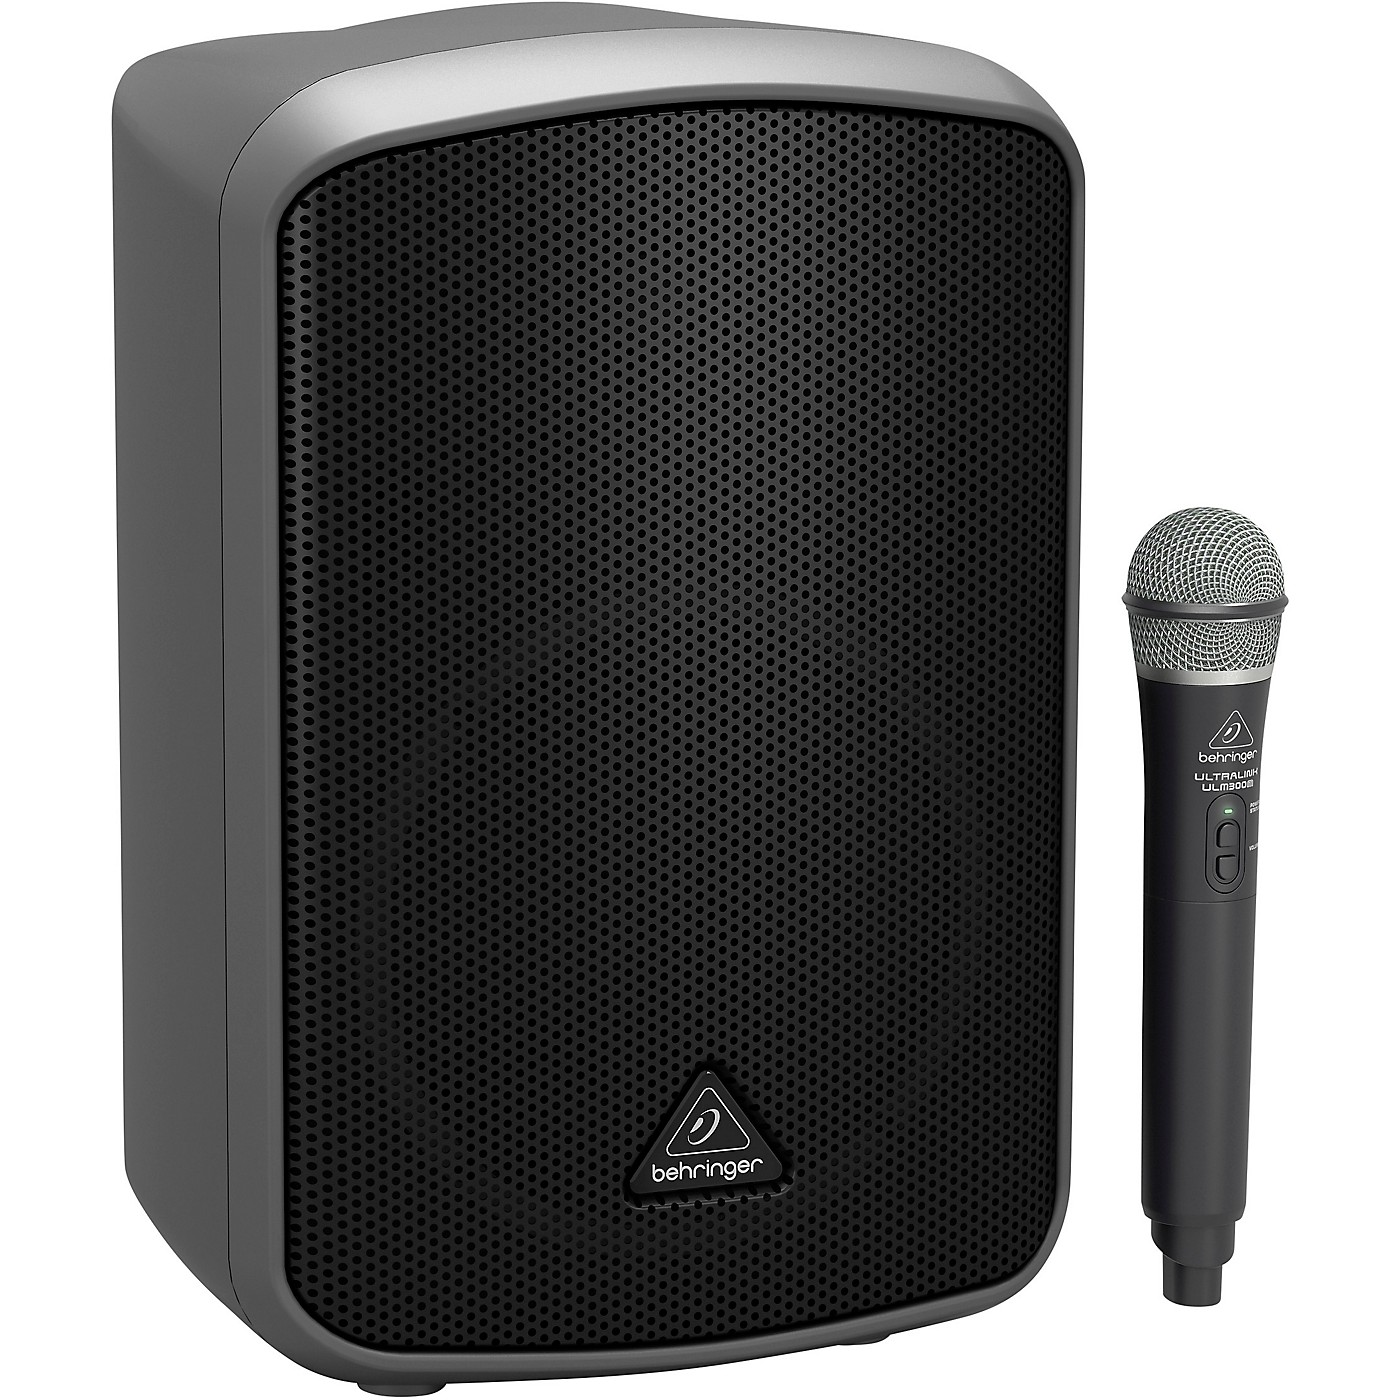 Behringer EUROPORT MPA200BT Portable Bluetooth Wireless Rechargeable 8 in. Speaker with Microphone thumbnail